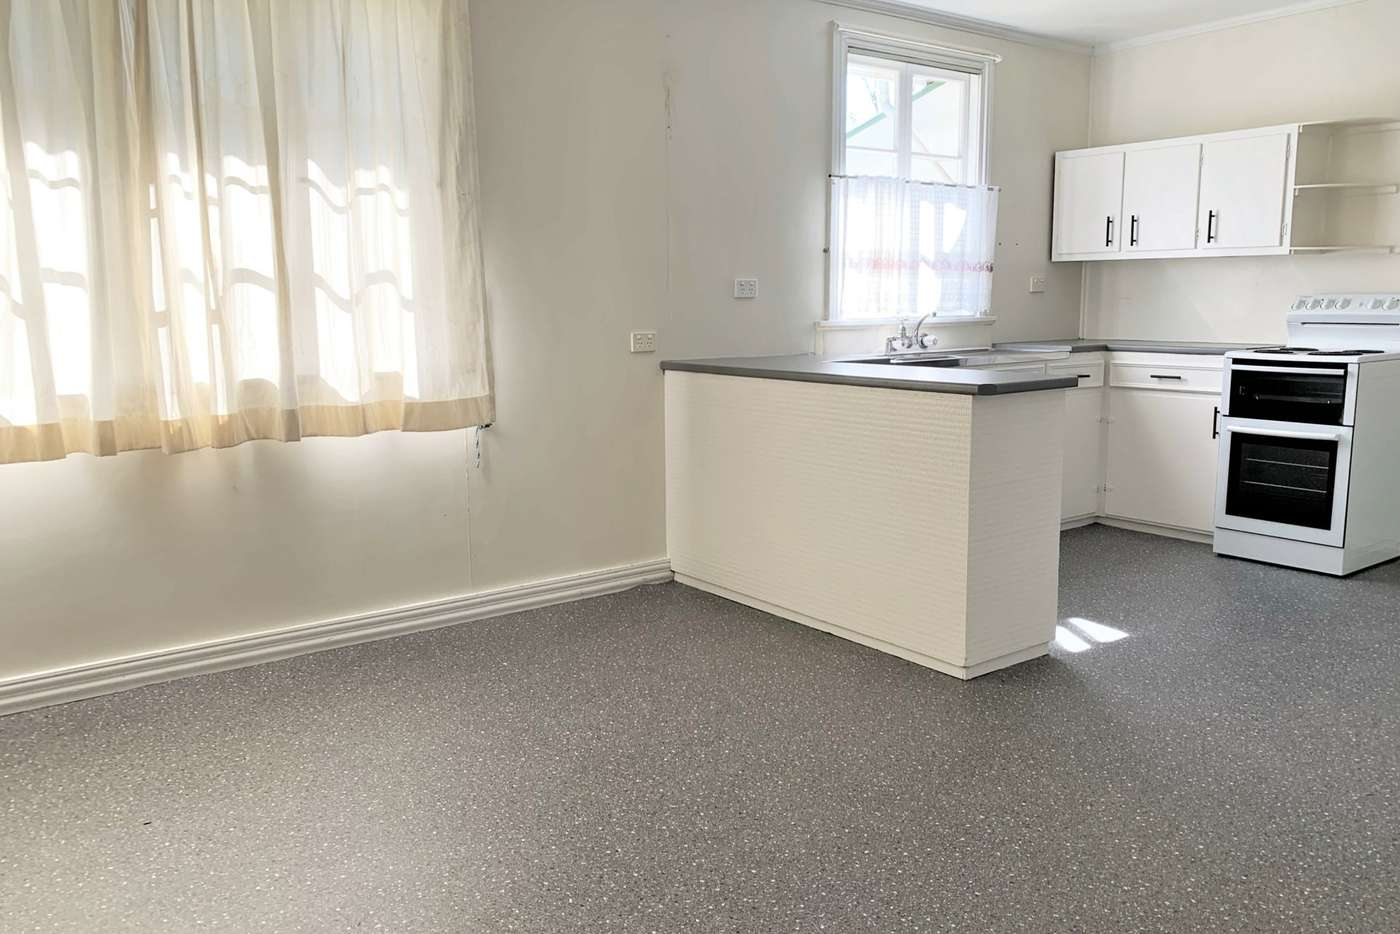 Sixth view of Homely house listing, 15 Evenden Street, Warwick QLD 4370